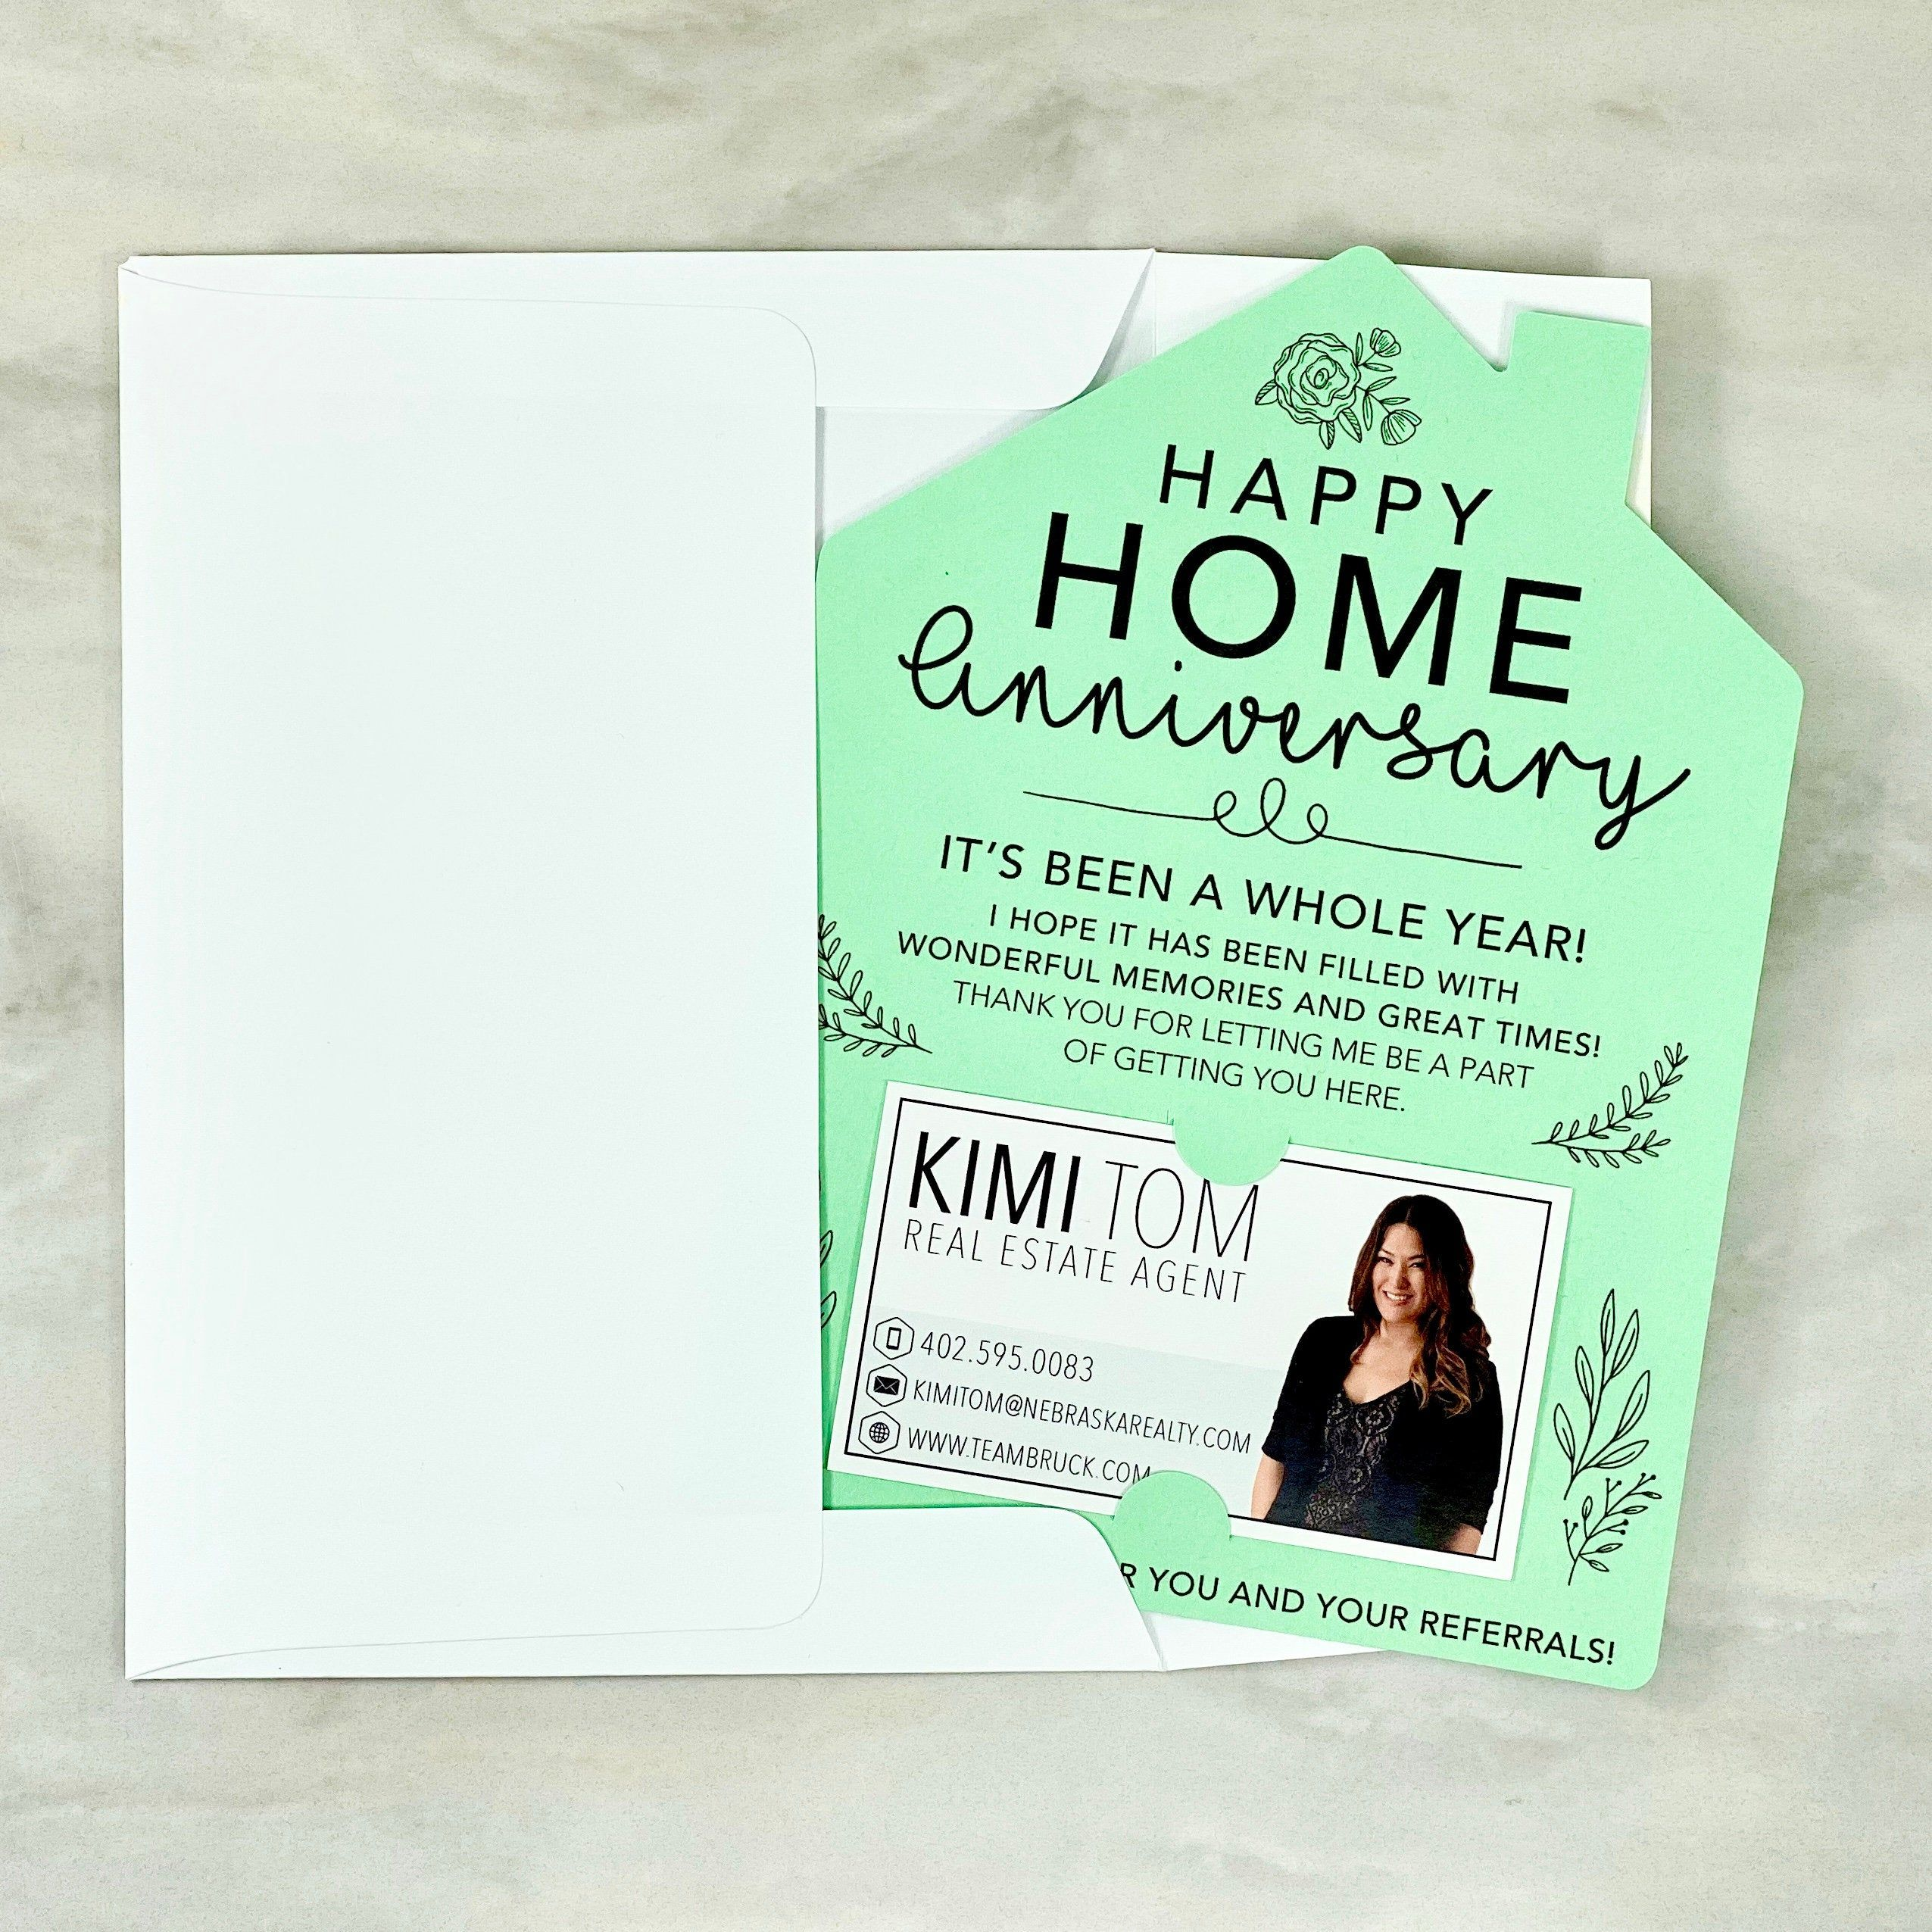 SET of Happy Home Anniversary Cards | Real Estate Agent Card | House Anniversary Card | Home Anniversary Card | Real Estate, Mortgage Mailer